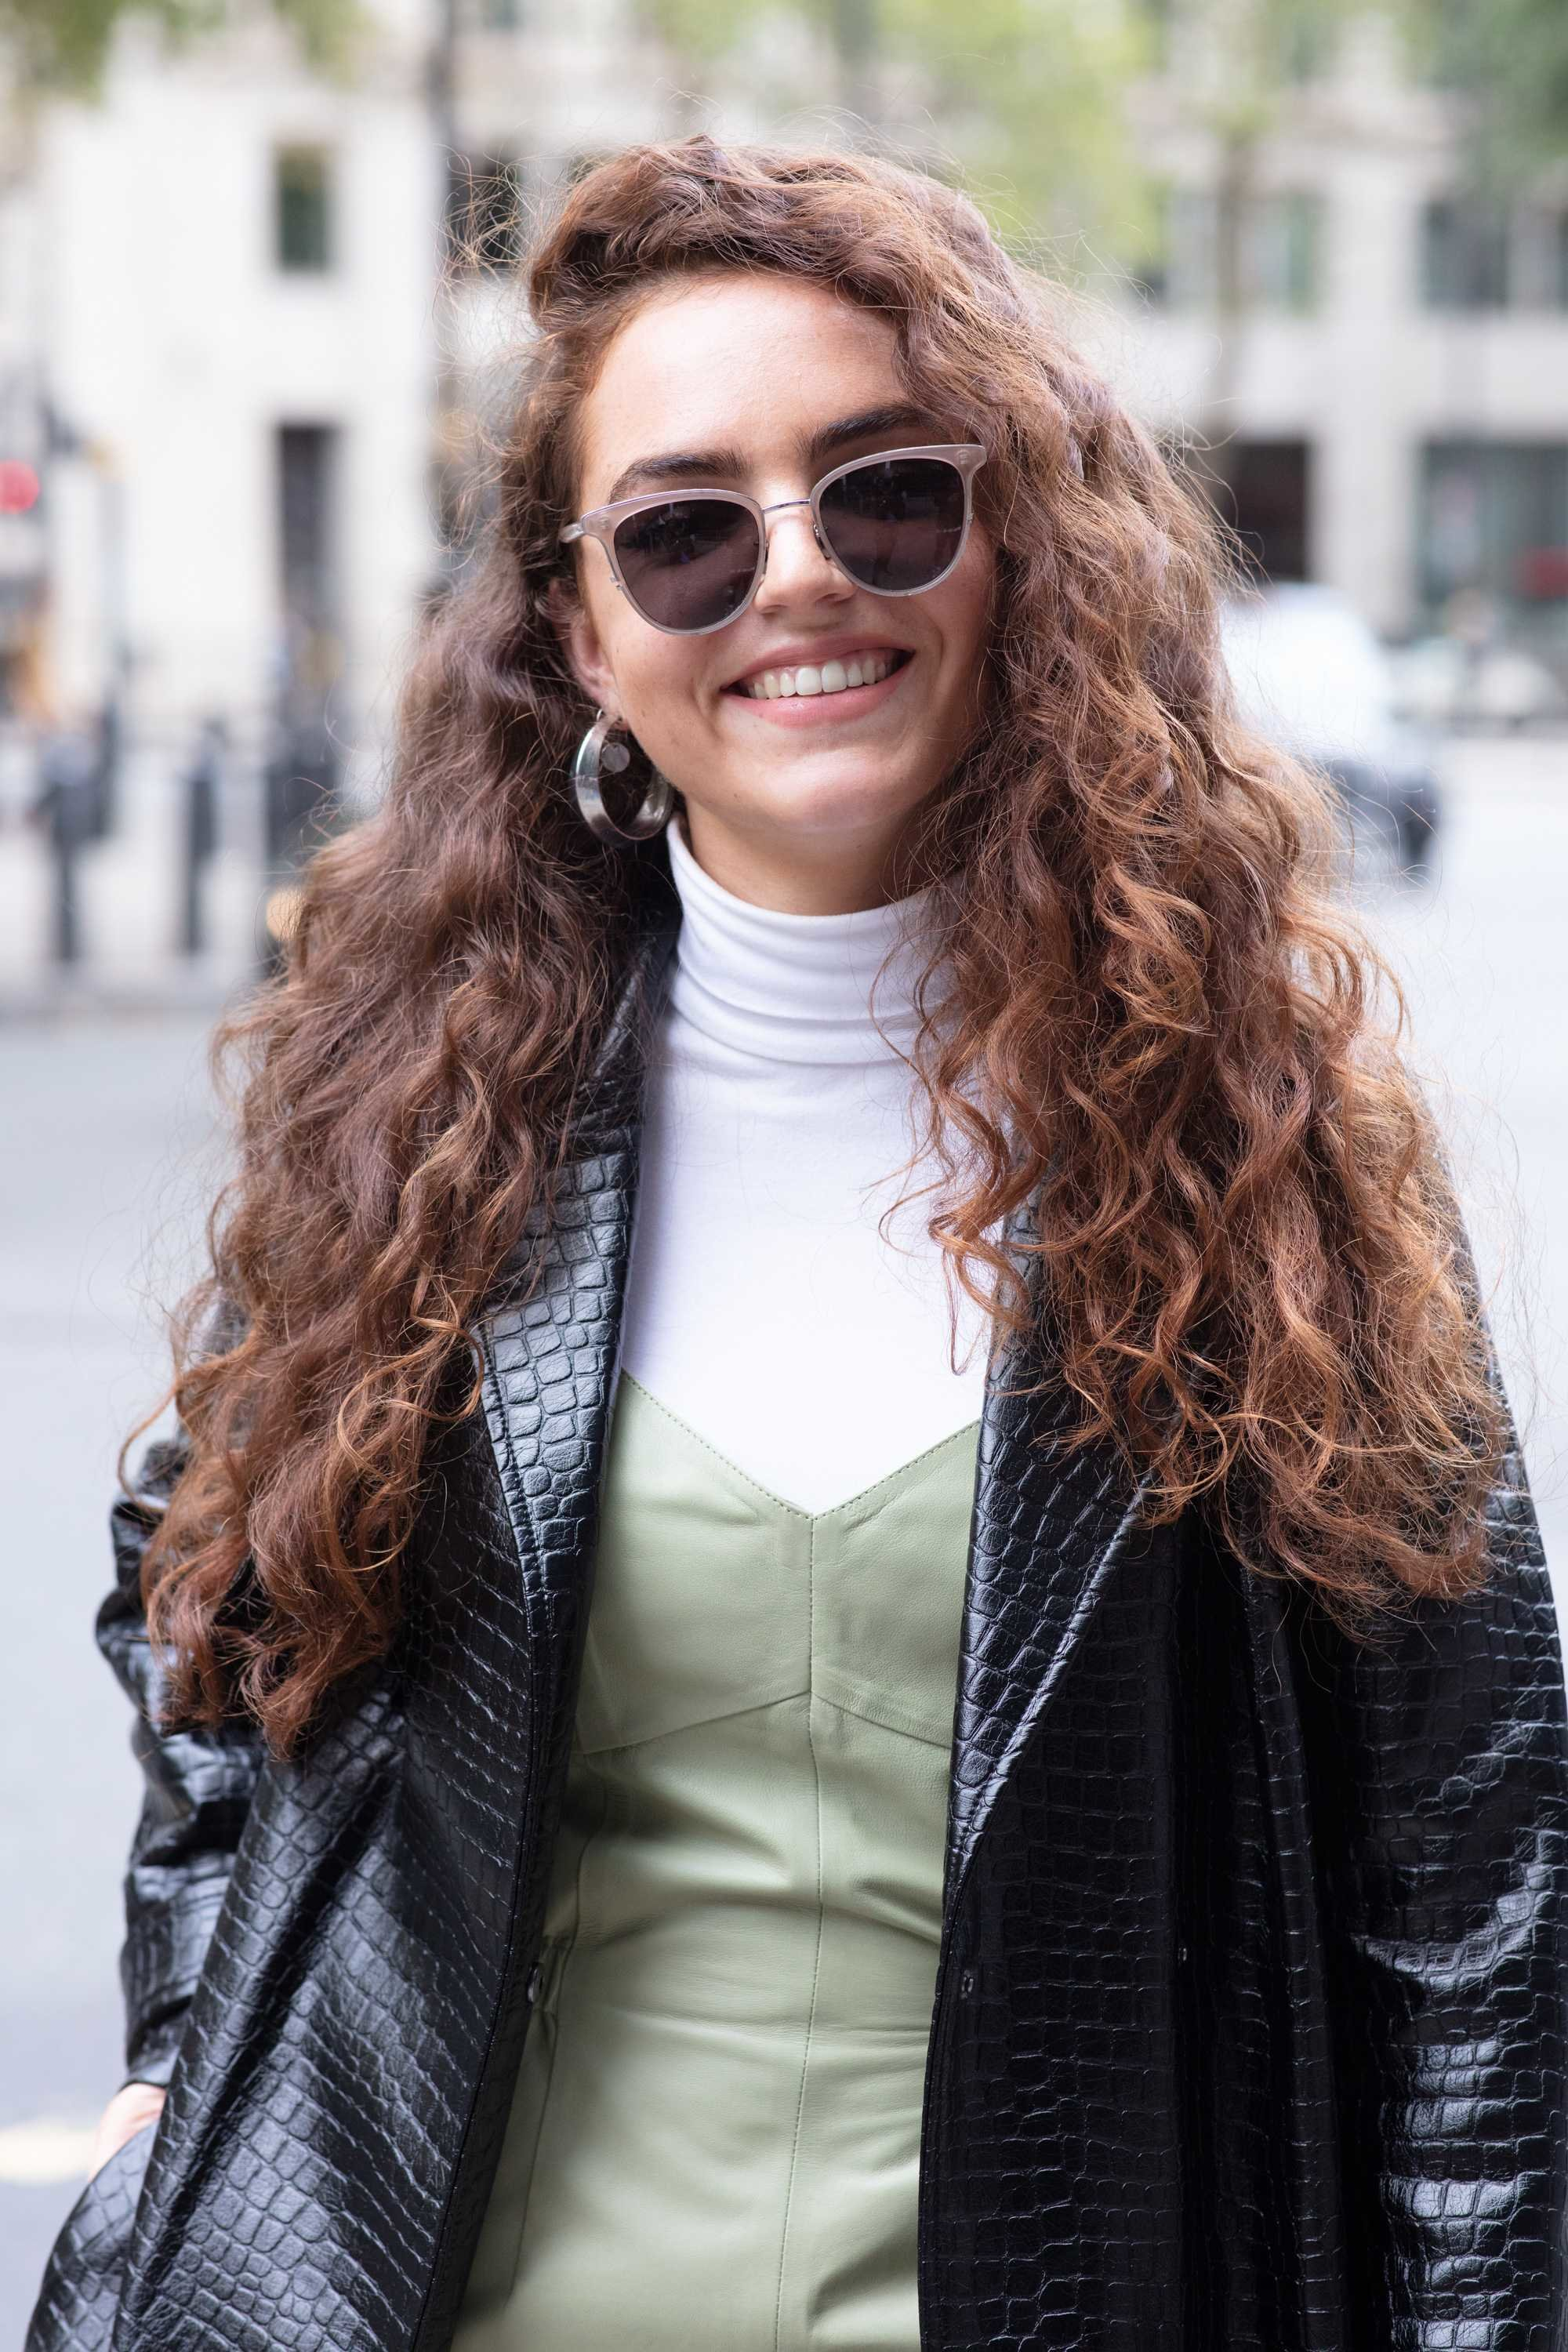 The Best London Fashion Week 2018 The Best Street Style Hair Pictures